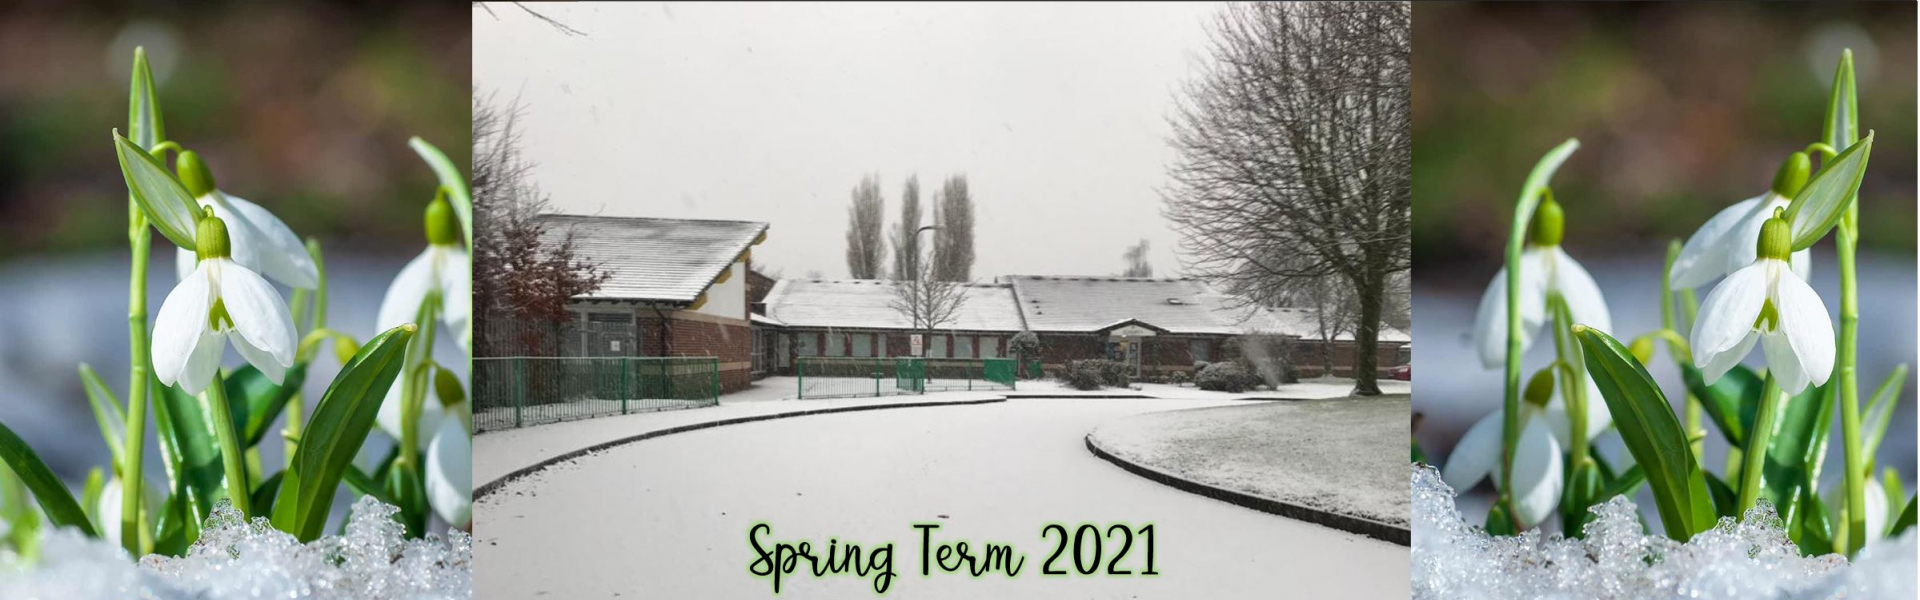 Spring Term 2021 Winter image